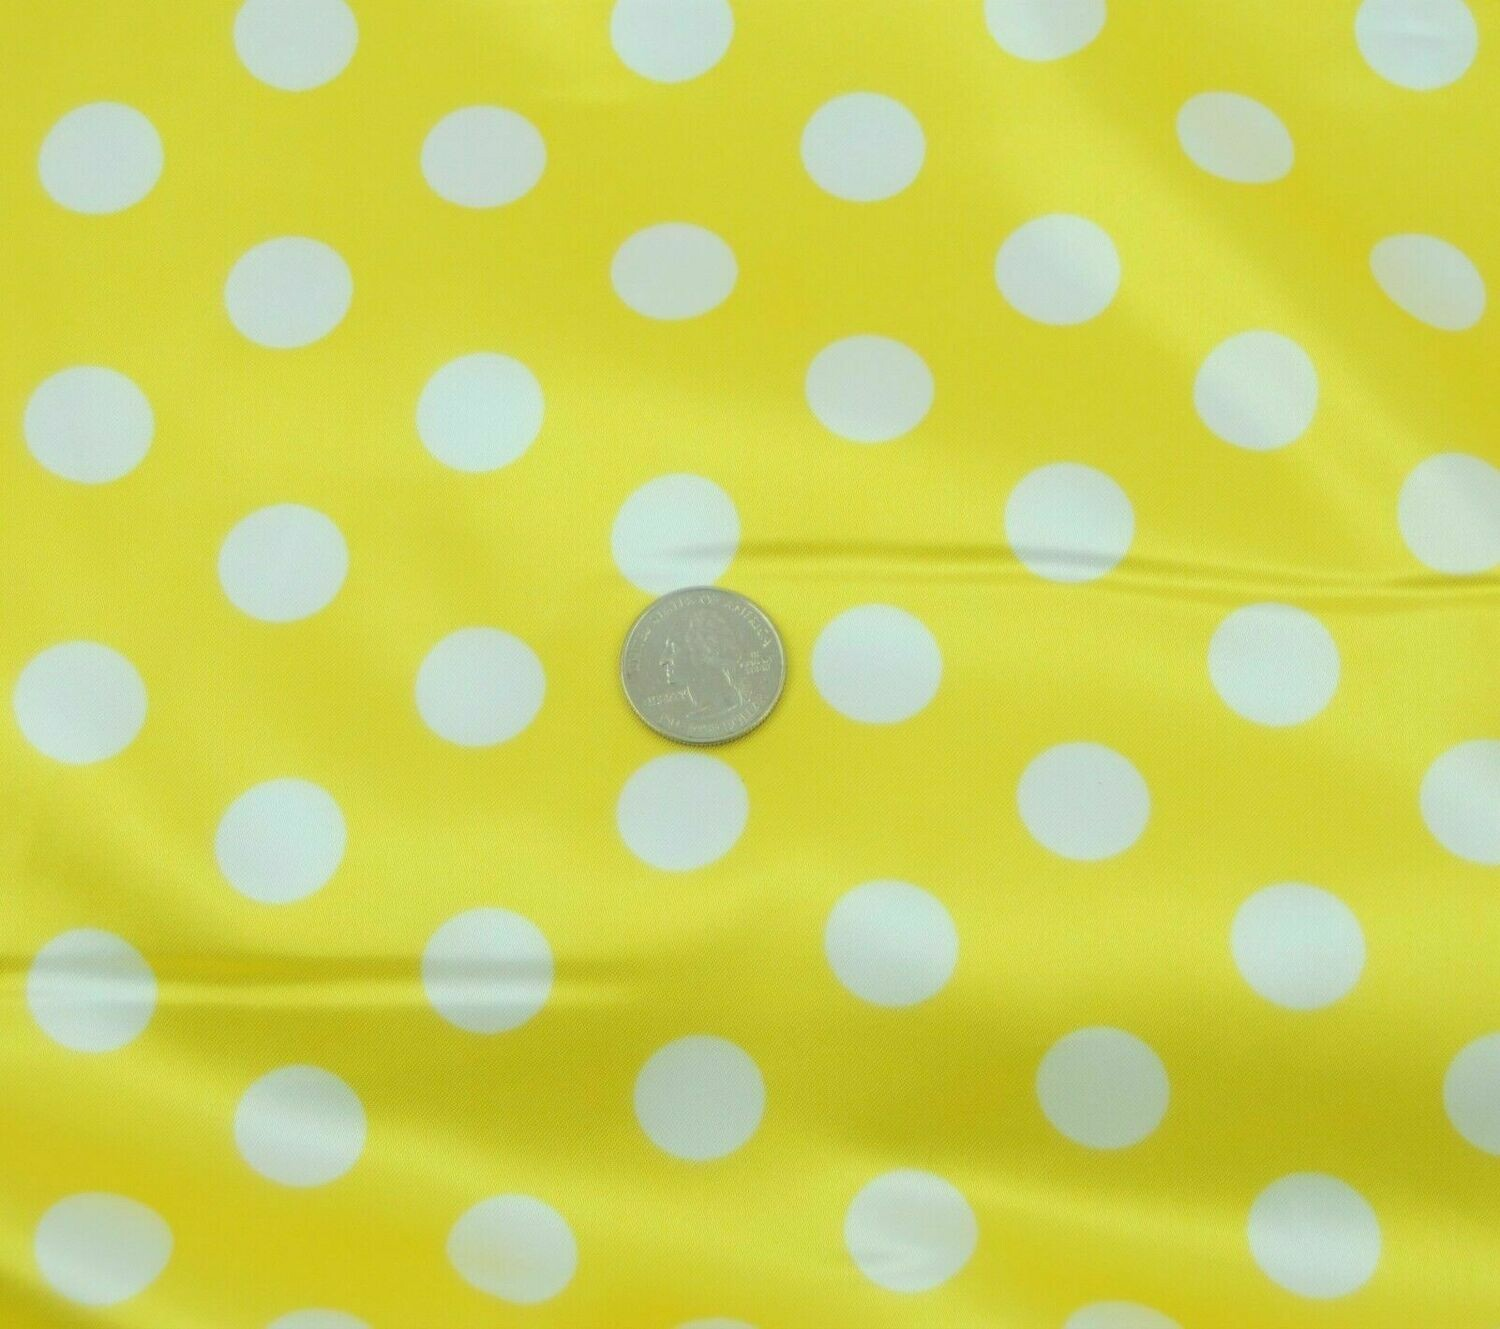 Polka Dot yellow w white SHINY SATIN 100%Polyester Pantie Lingerie Fabric 60